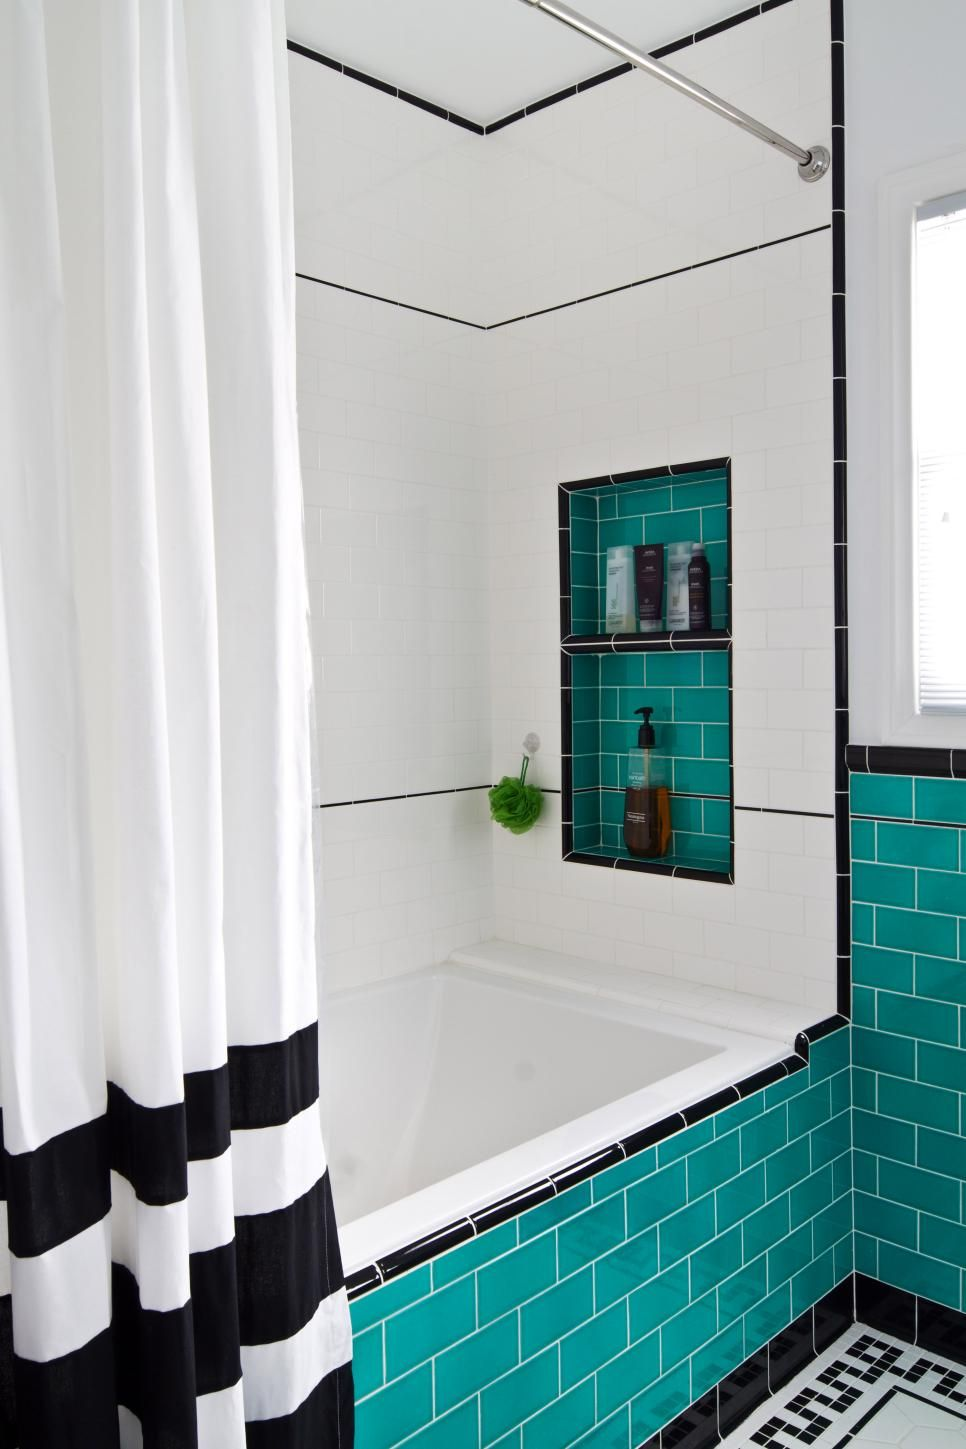 Badezimmer dekor gelb a tiled alcove keeps musthaves handy in the shower and soaking tub